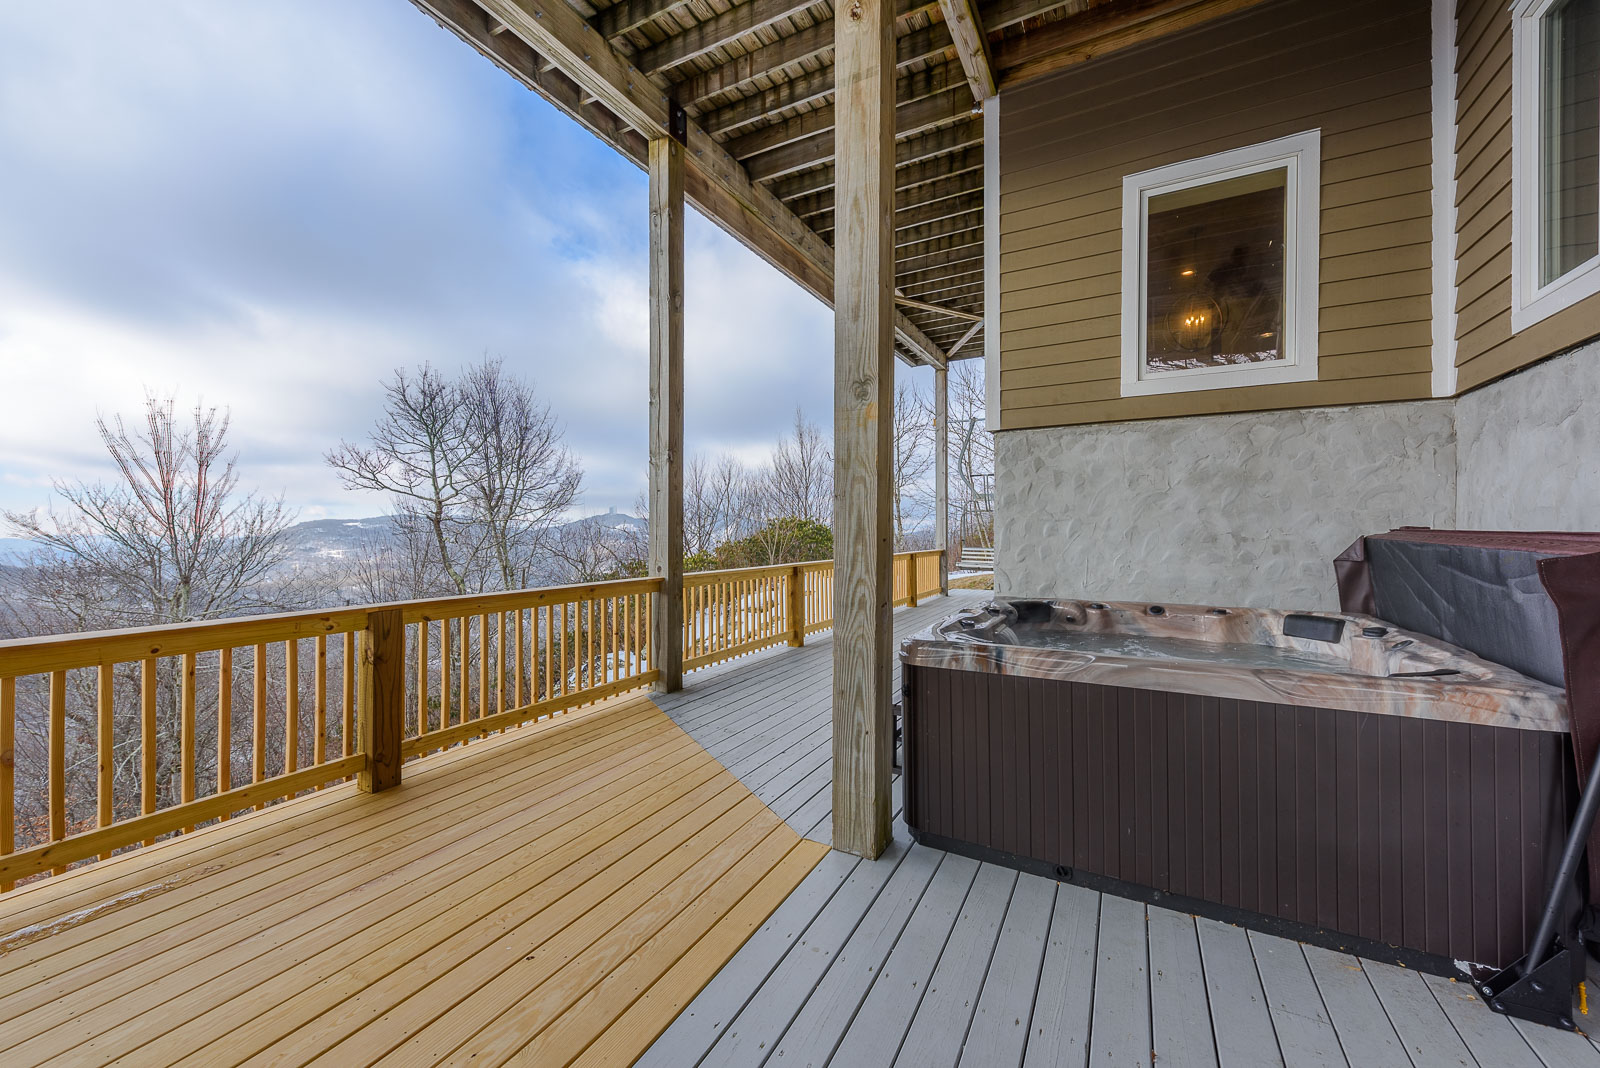 Private Hot Tub on Rear Lower Deck